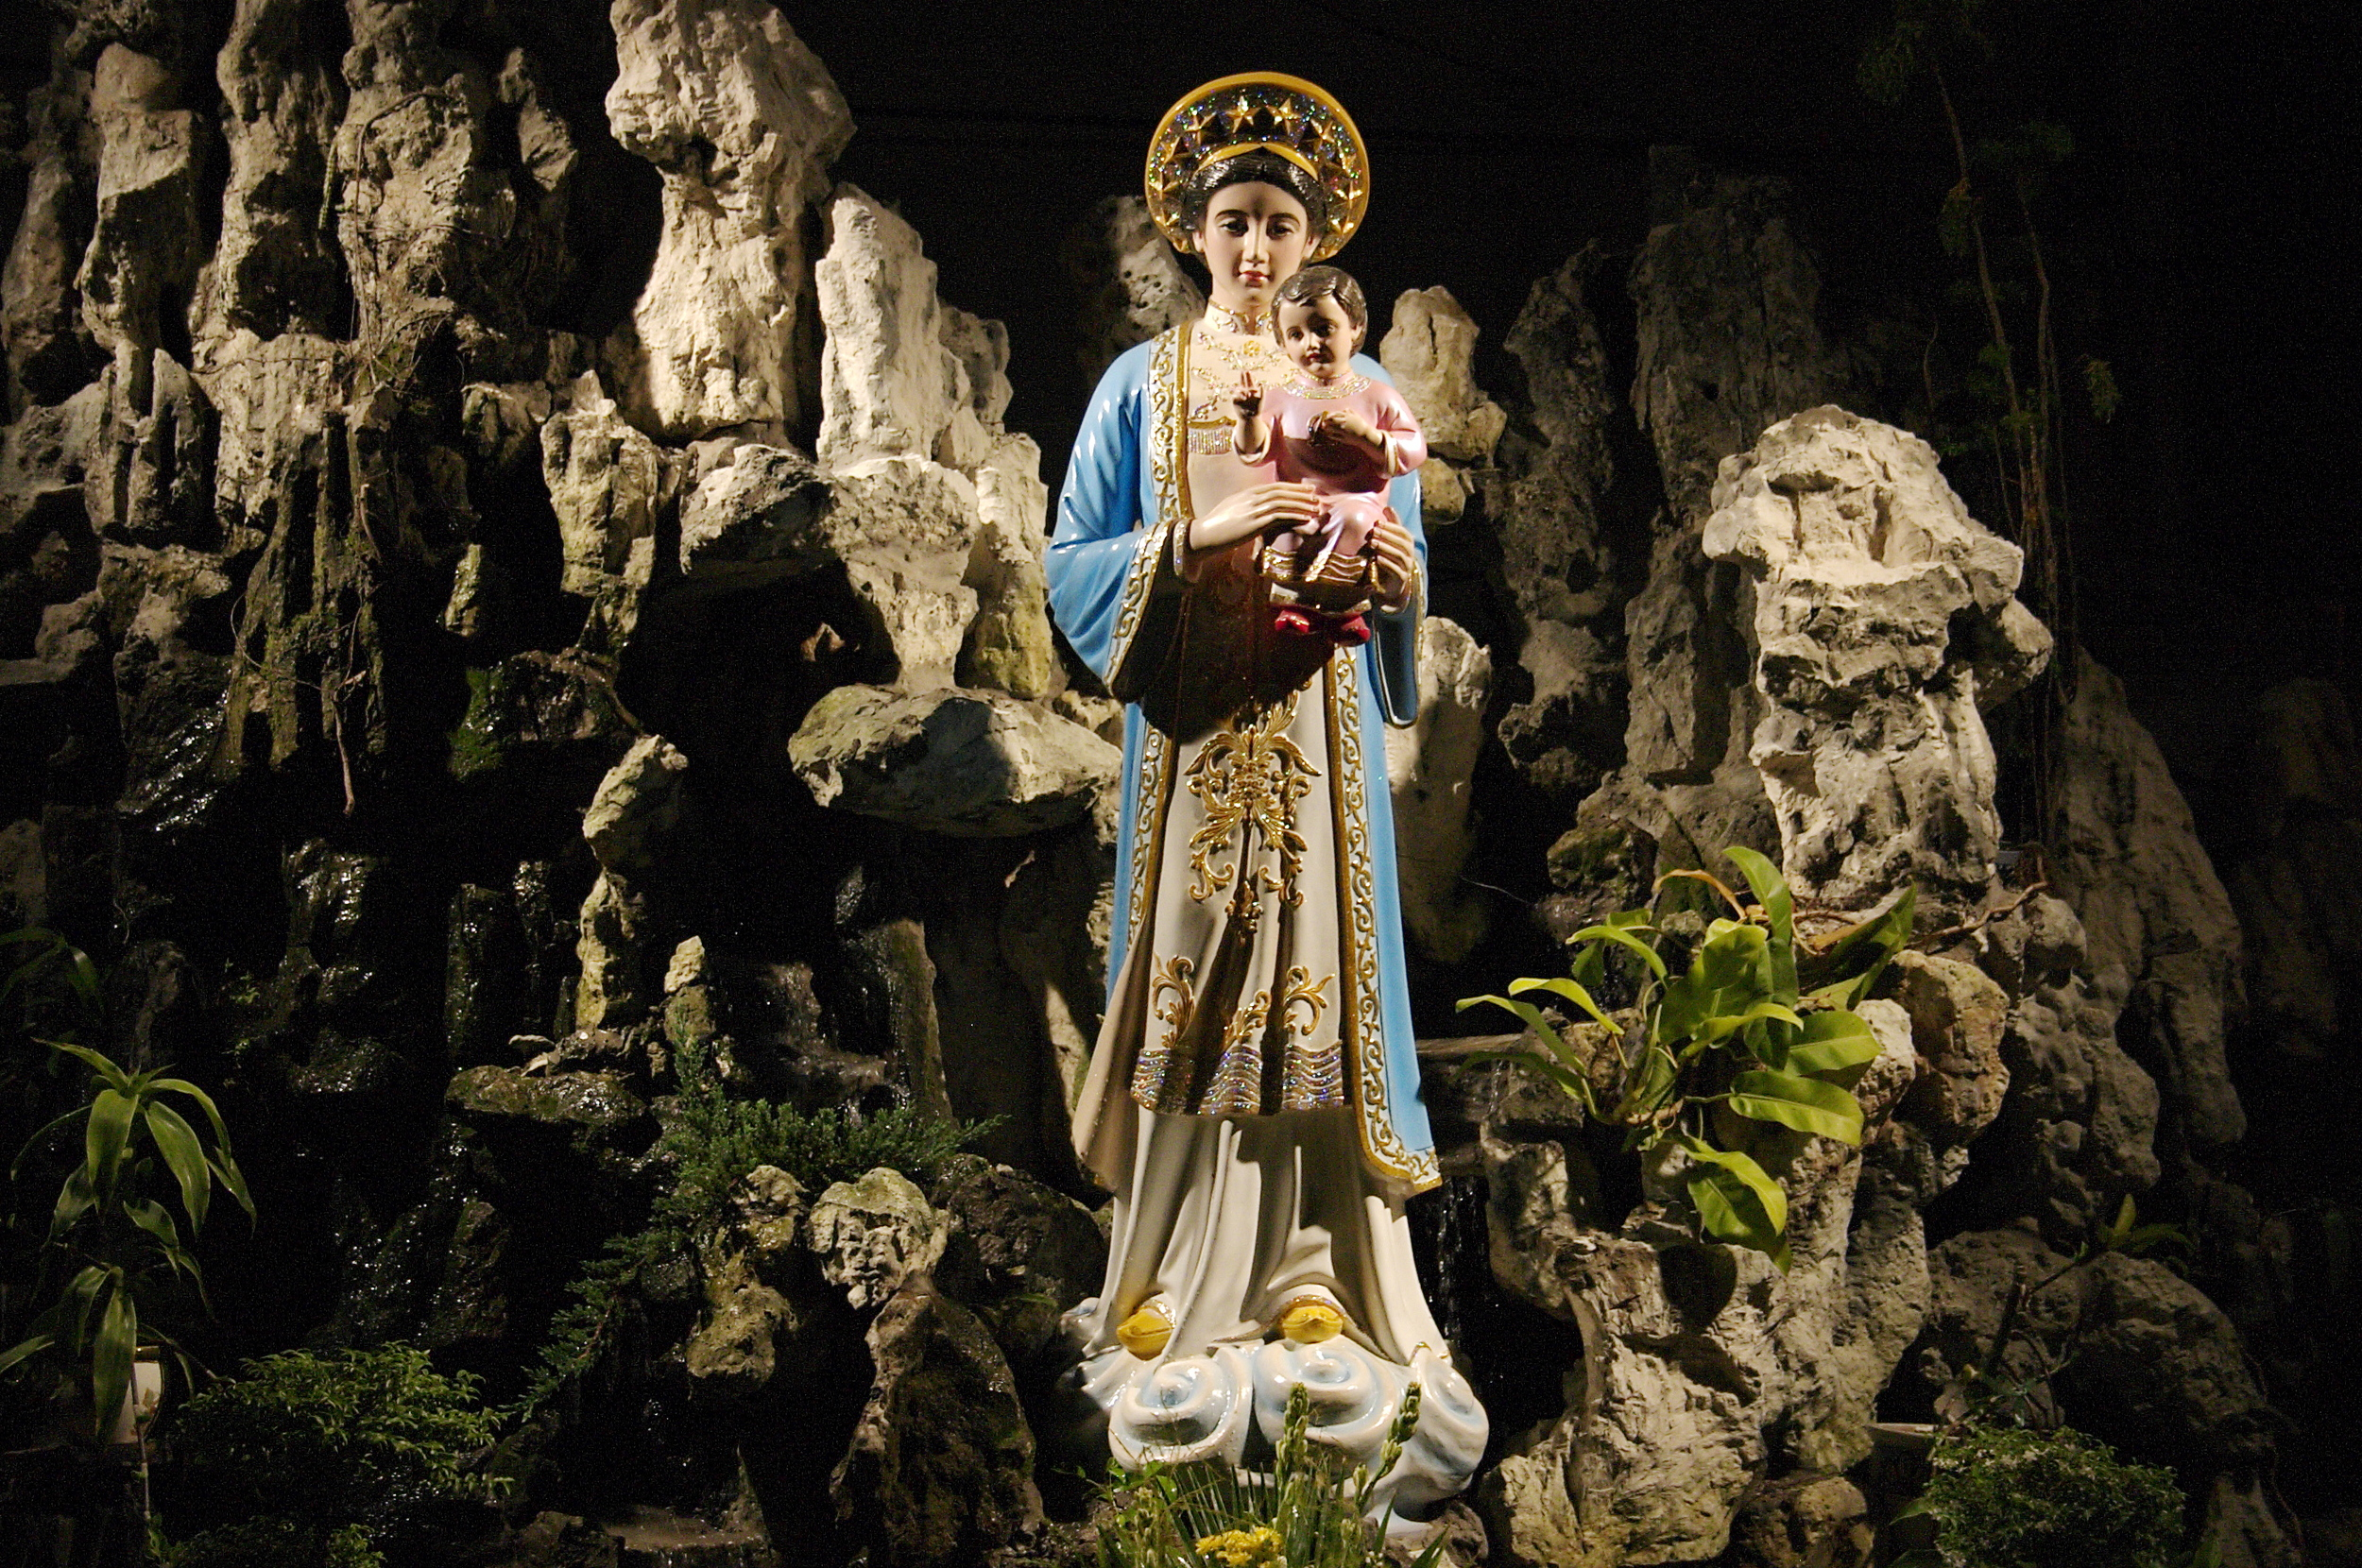 A late night walk-about through some sketchy neighborhoods and no indication of how to get home brought us to a beautiful church with this grotto of the Blessed Mother.